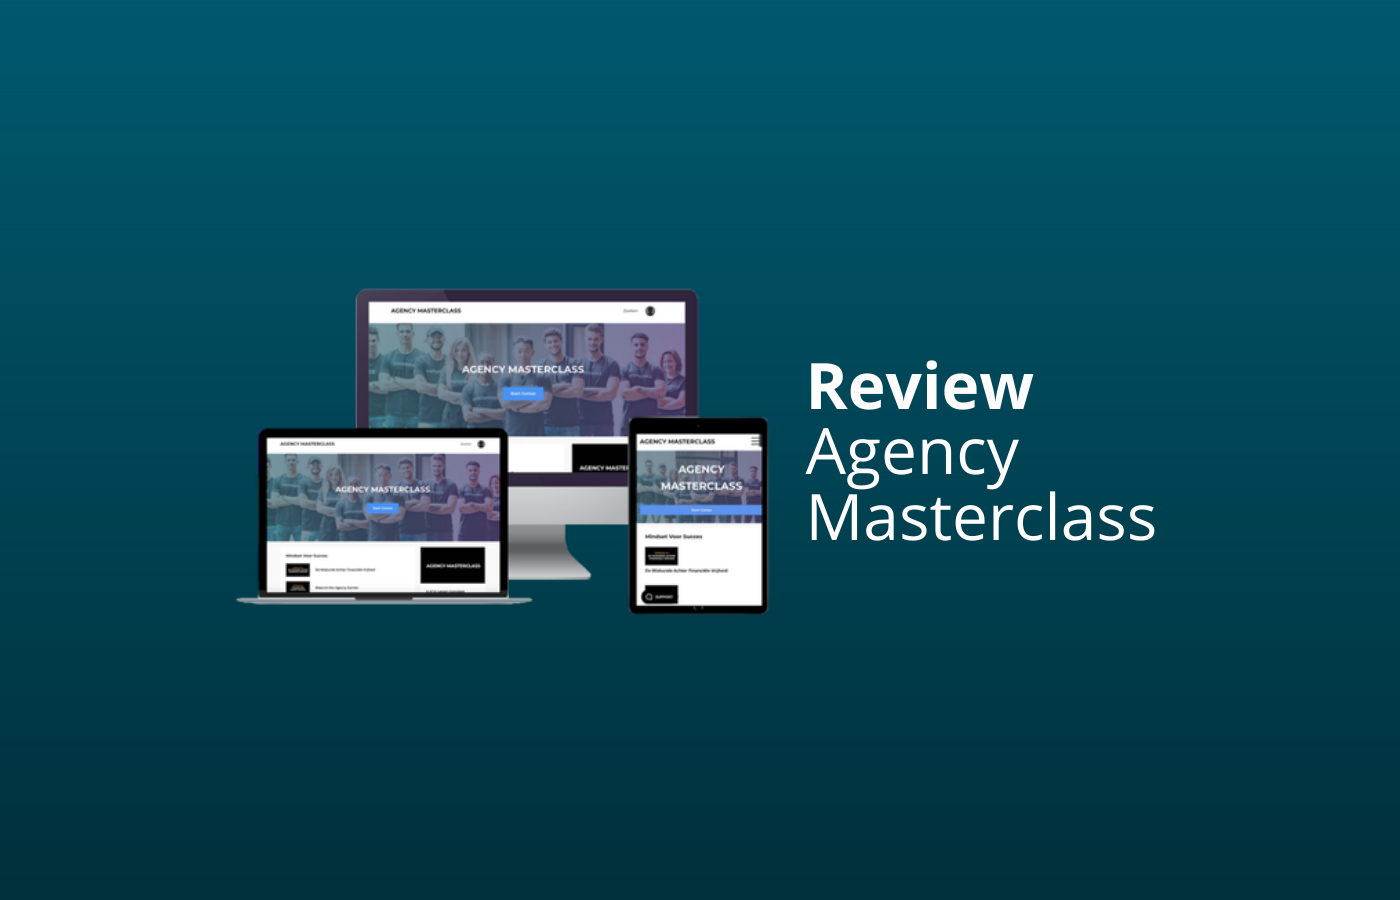 agency masterclass review en ervaringen